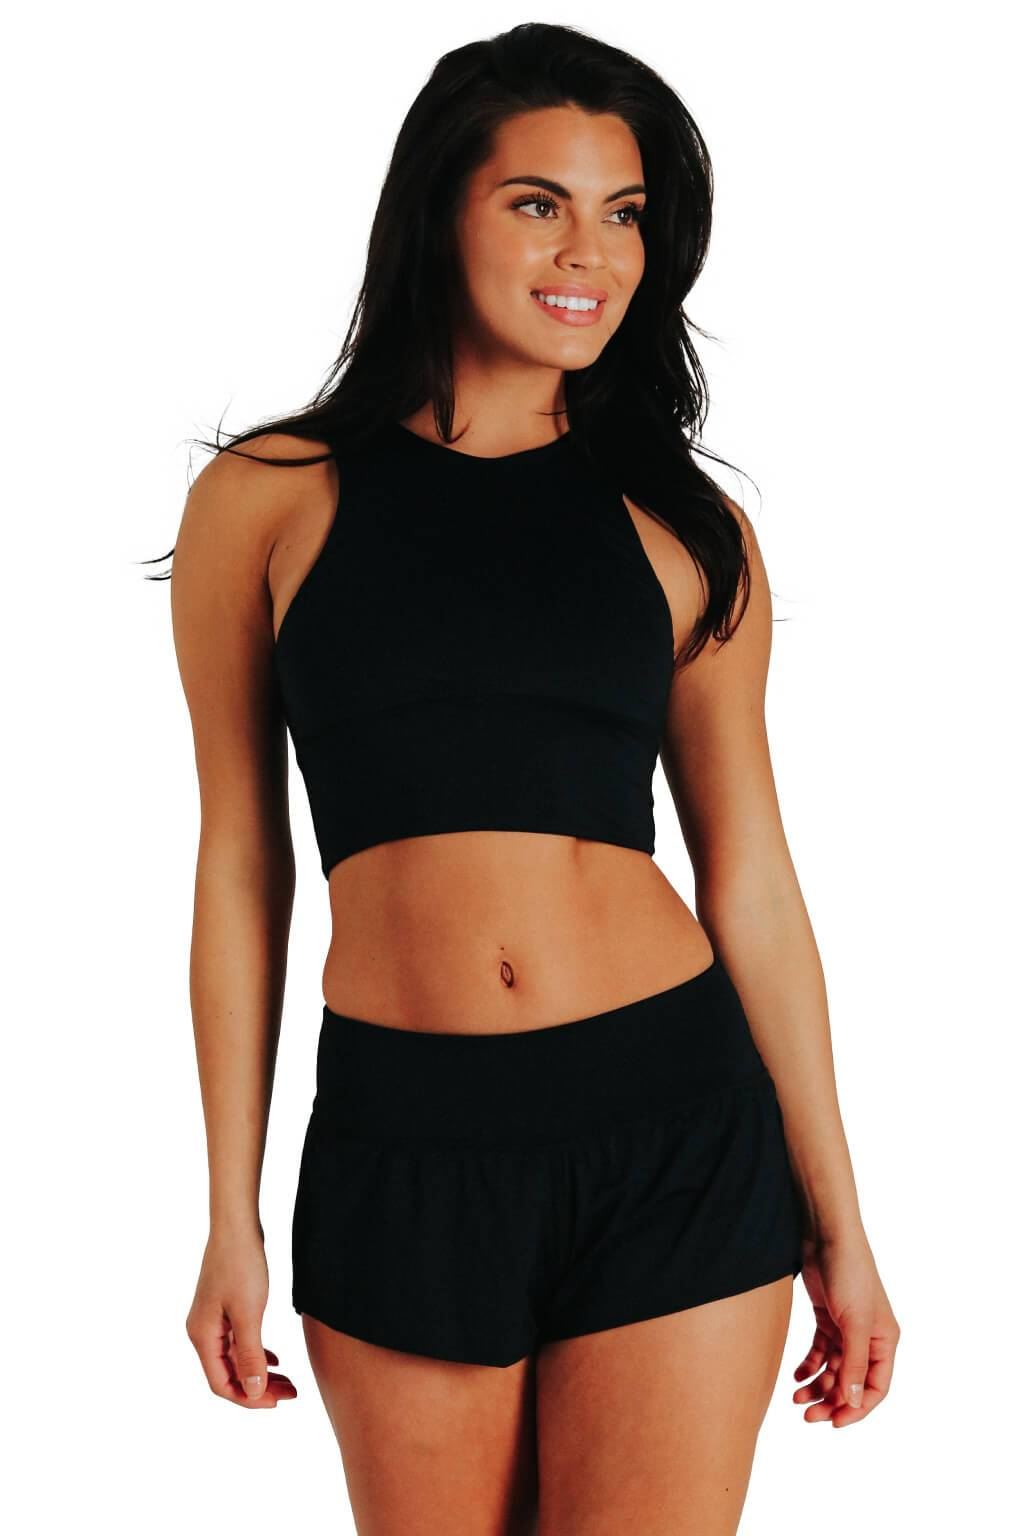 Yoga Democracy Women's Eco-friendly Free Range yoga sports Bra in Jet Black made in the USA from post consumer recycled plastic bottles